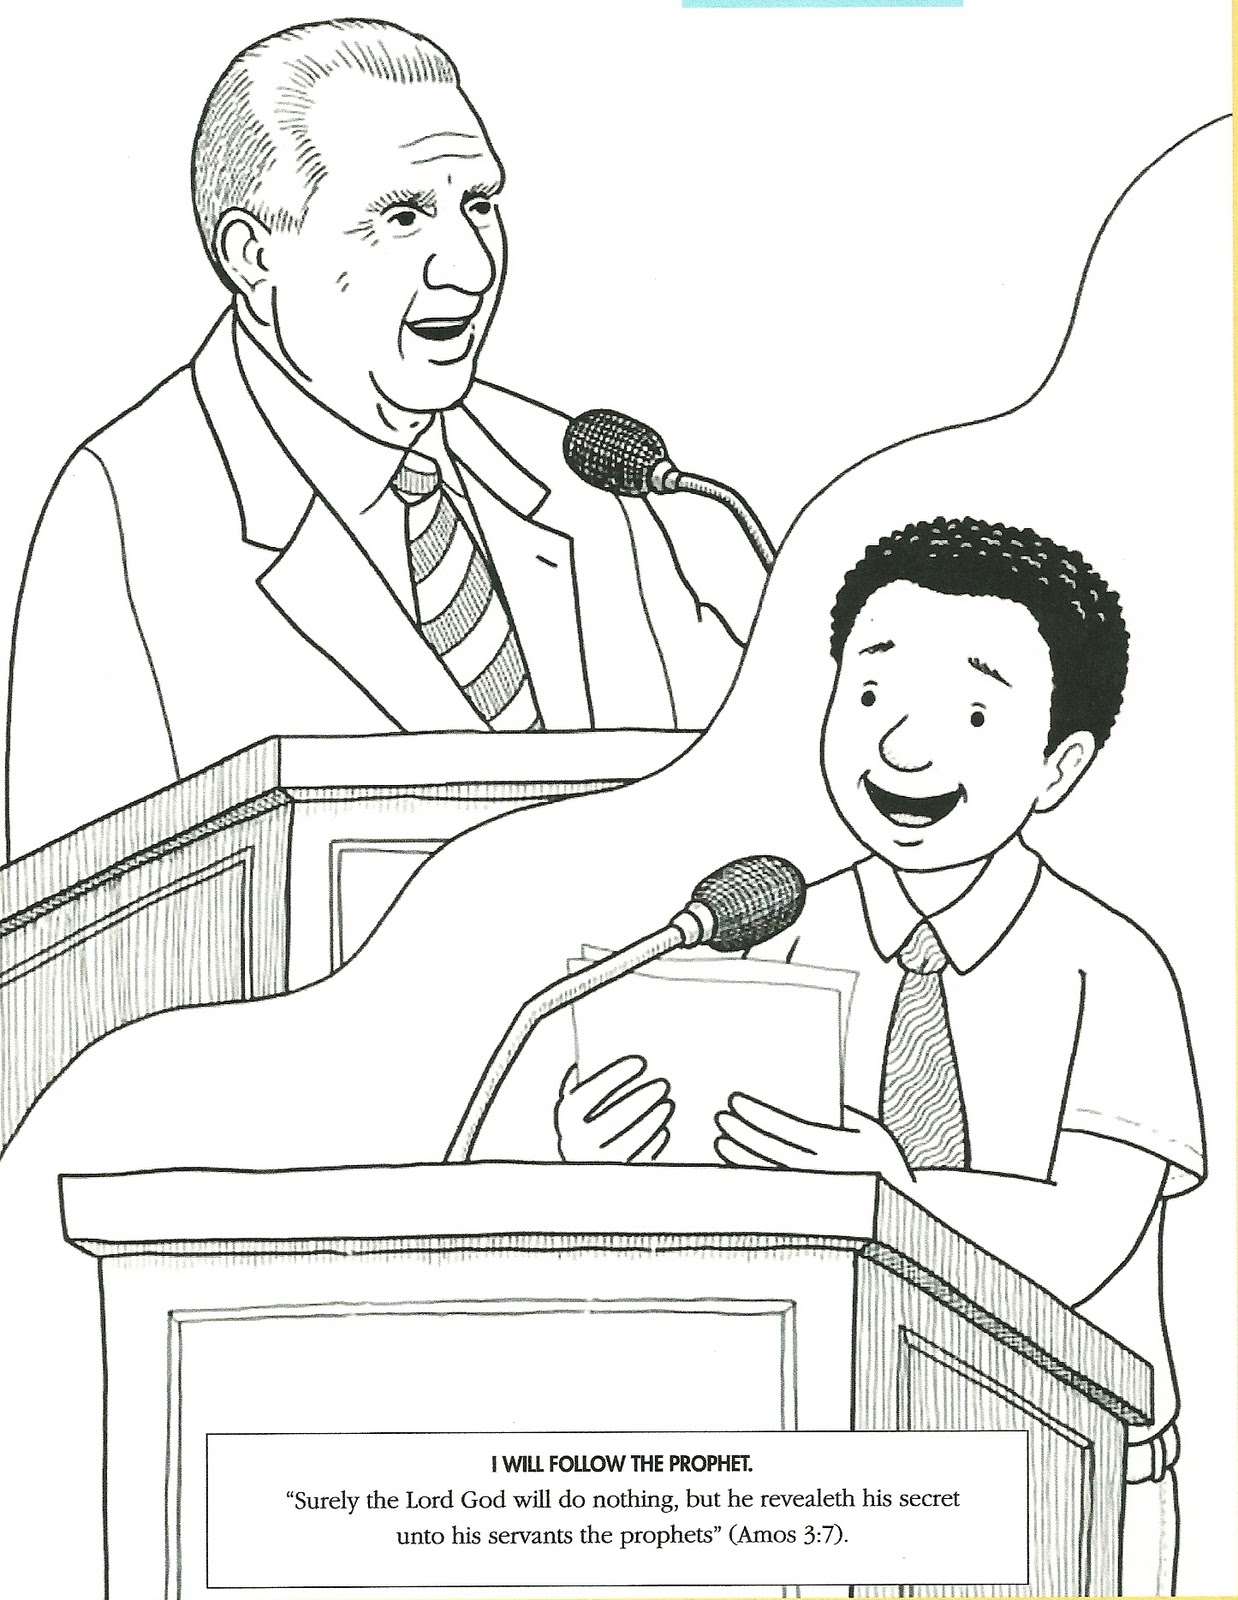 Adult Top Thomas S Monson Coloring Page Gallery Images beauty thomas s monson coloring page images